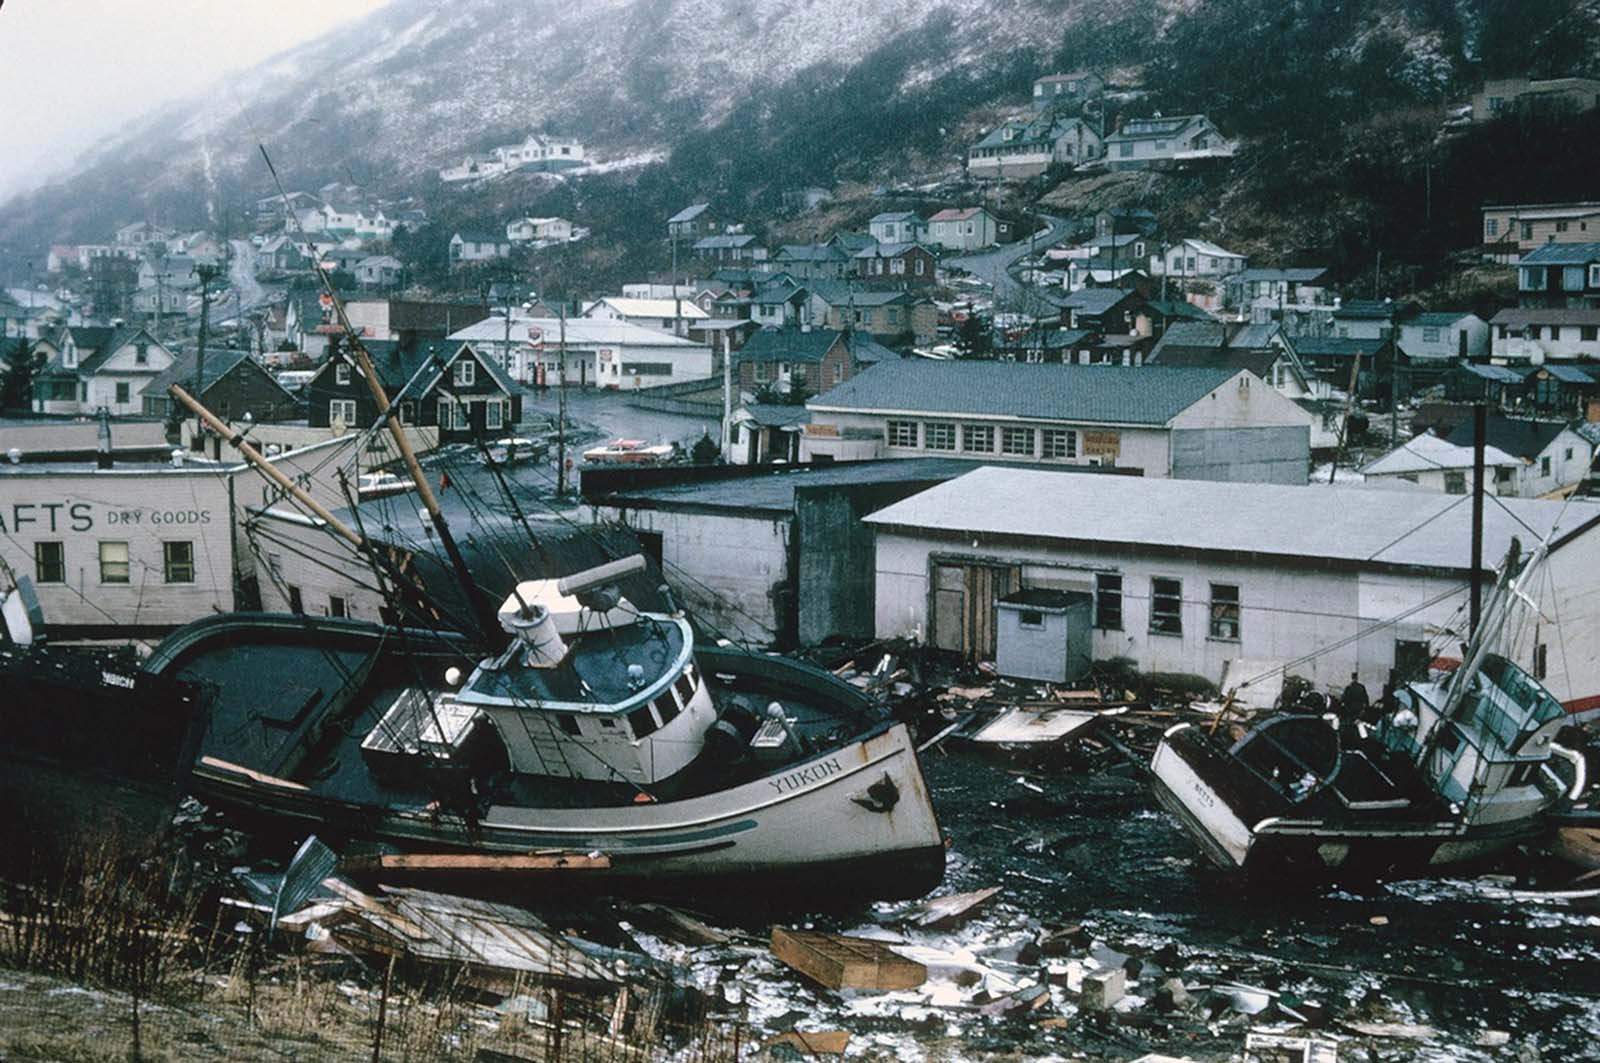 Chaotic condition of the commercial section of Kodiak following inundation by seismic sea waves. The small boat harbor contained an estimated 160 crab and salmon fishing boats when the waves struck.